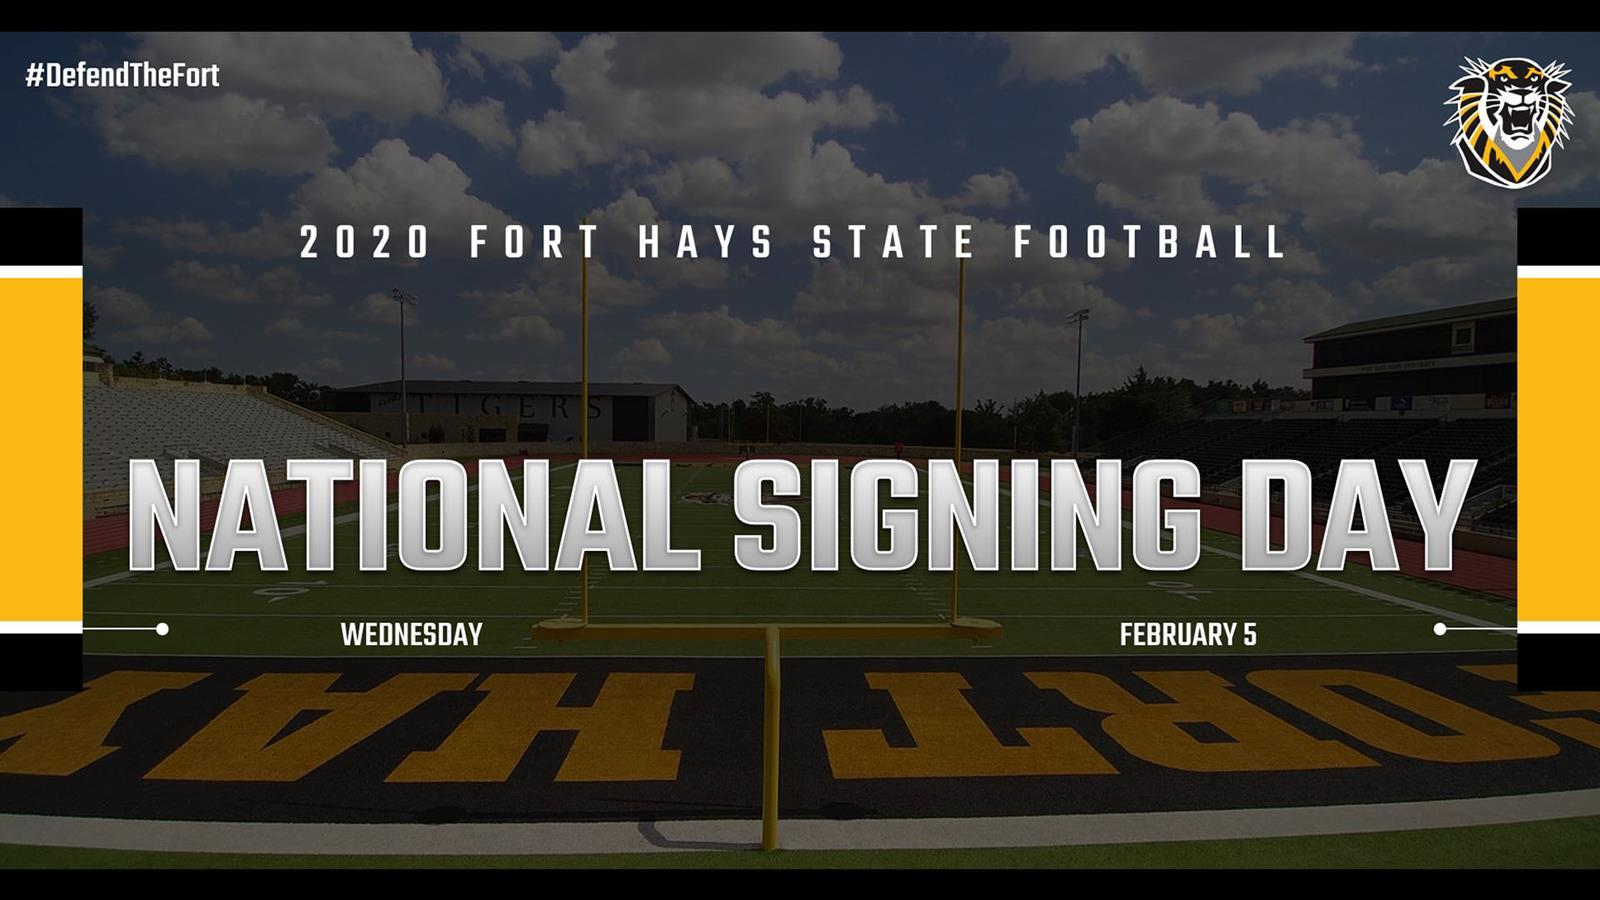 National Signing Day 2020 Wallpapers 1600x900